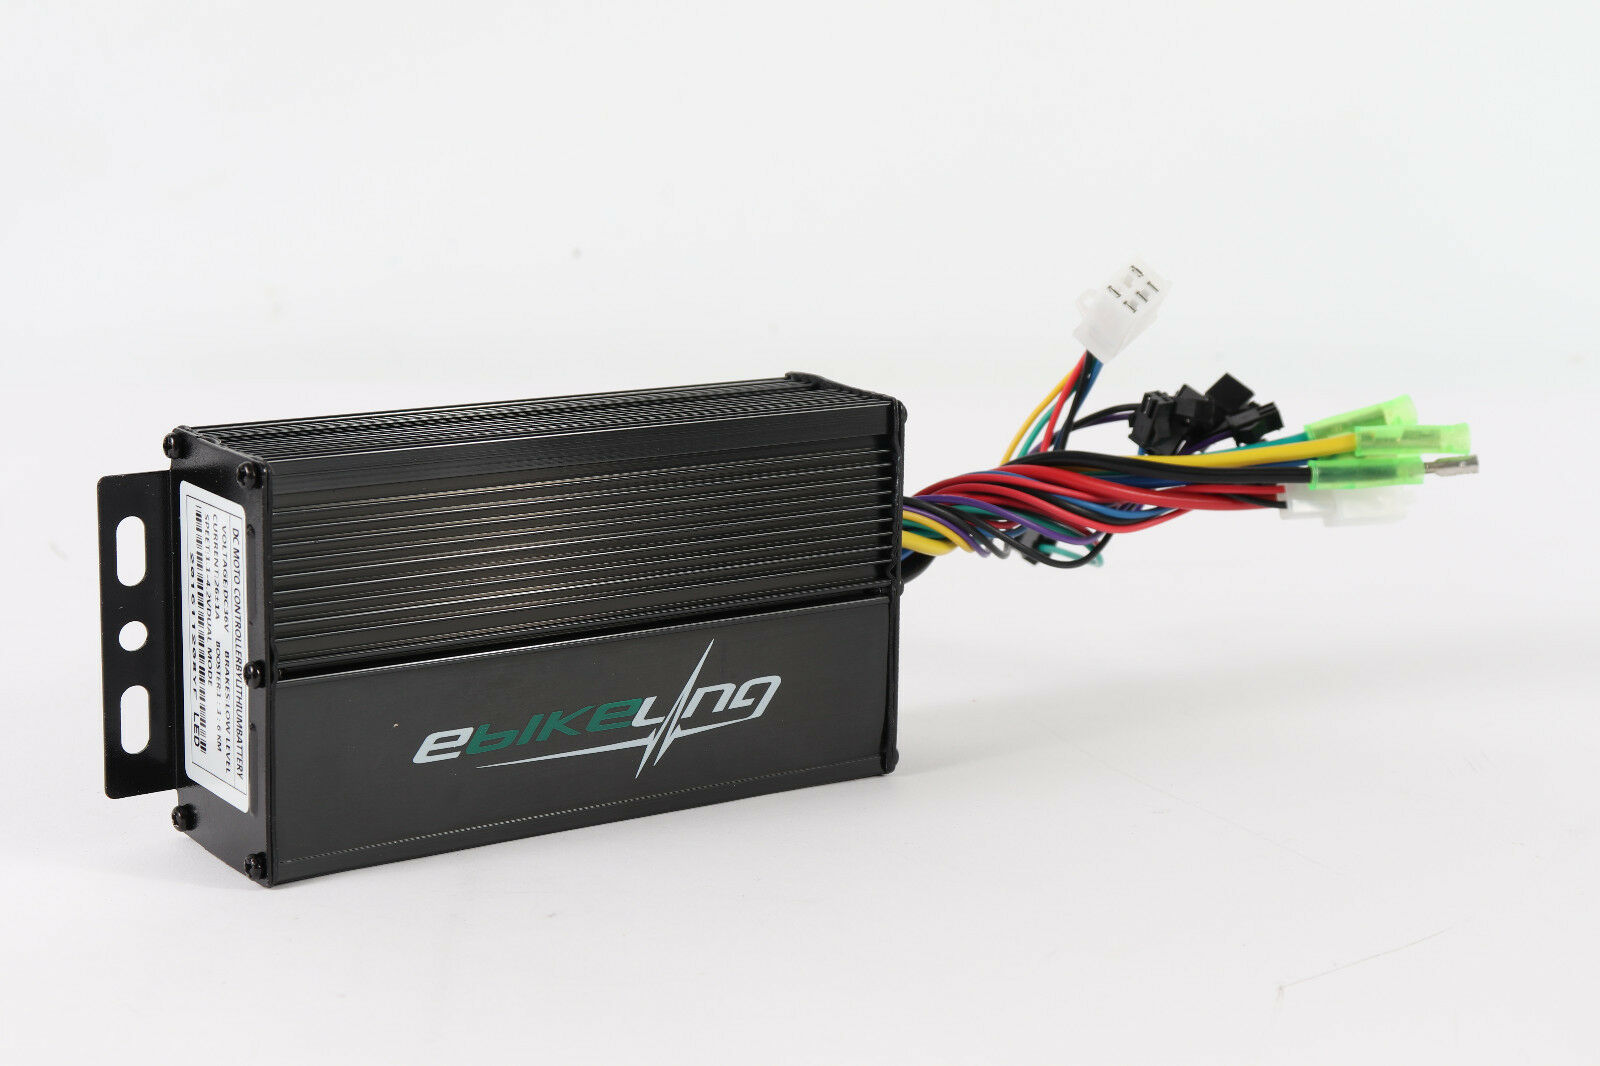 36 48V 26A Brushless Controller with  4-pin 810 display eBikeling eBike  best prices